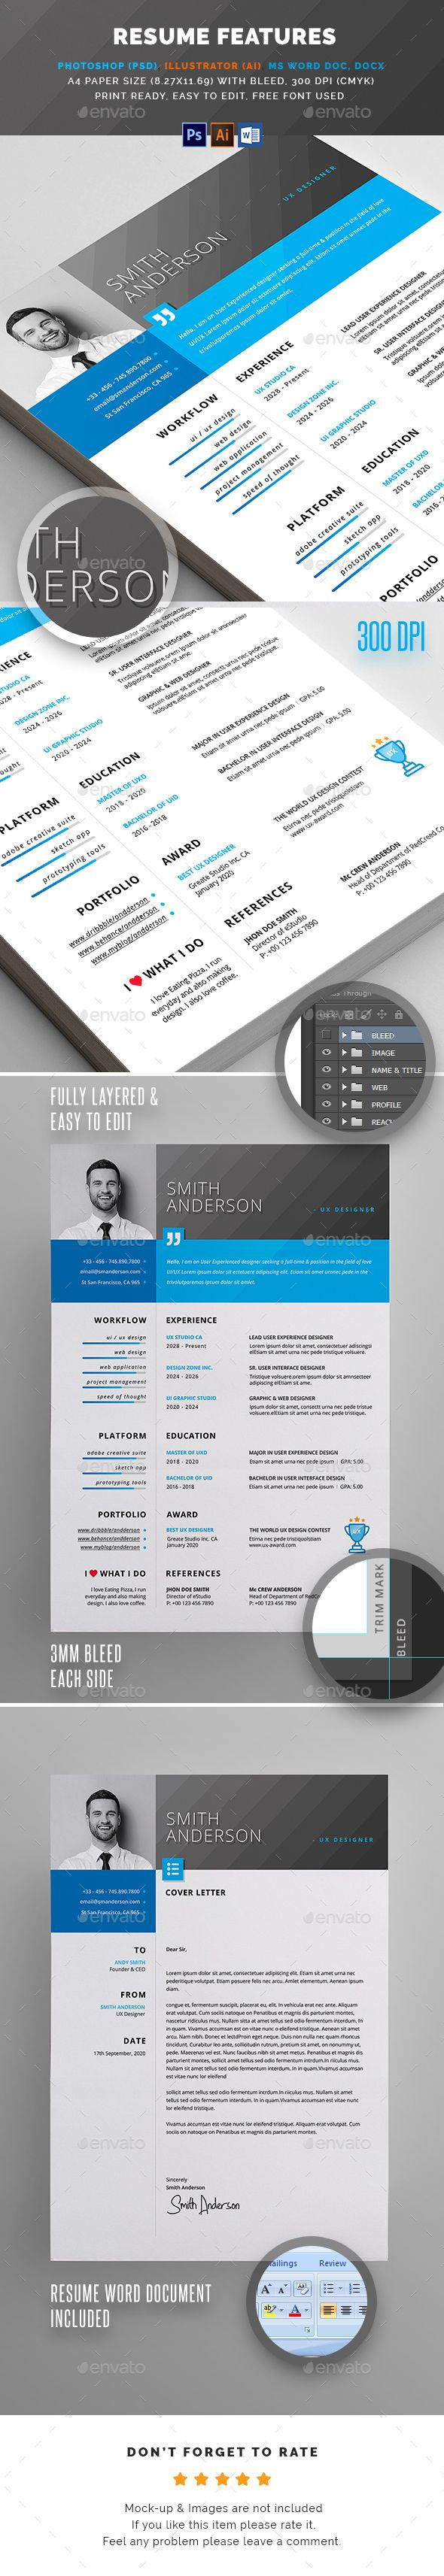 Resume FEATURES:      Easy customizable and editable     300 DPI CMYK Print Ready!     A4 size 216×303 mm with Bleed     100% Layered and Full Editable     02 PSD Files included     02 Ai Files included     04 Word Files (DOC & DOCX) included     Help Guide Included     Print Ready Format     Images are not included in the download.